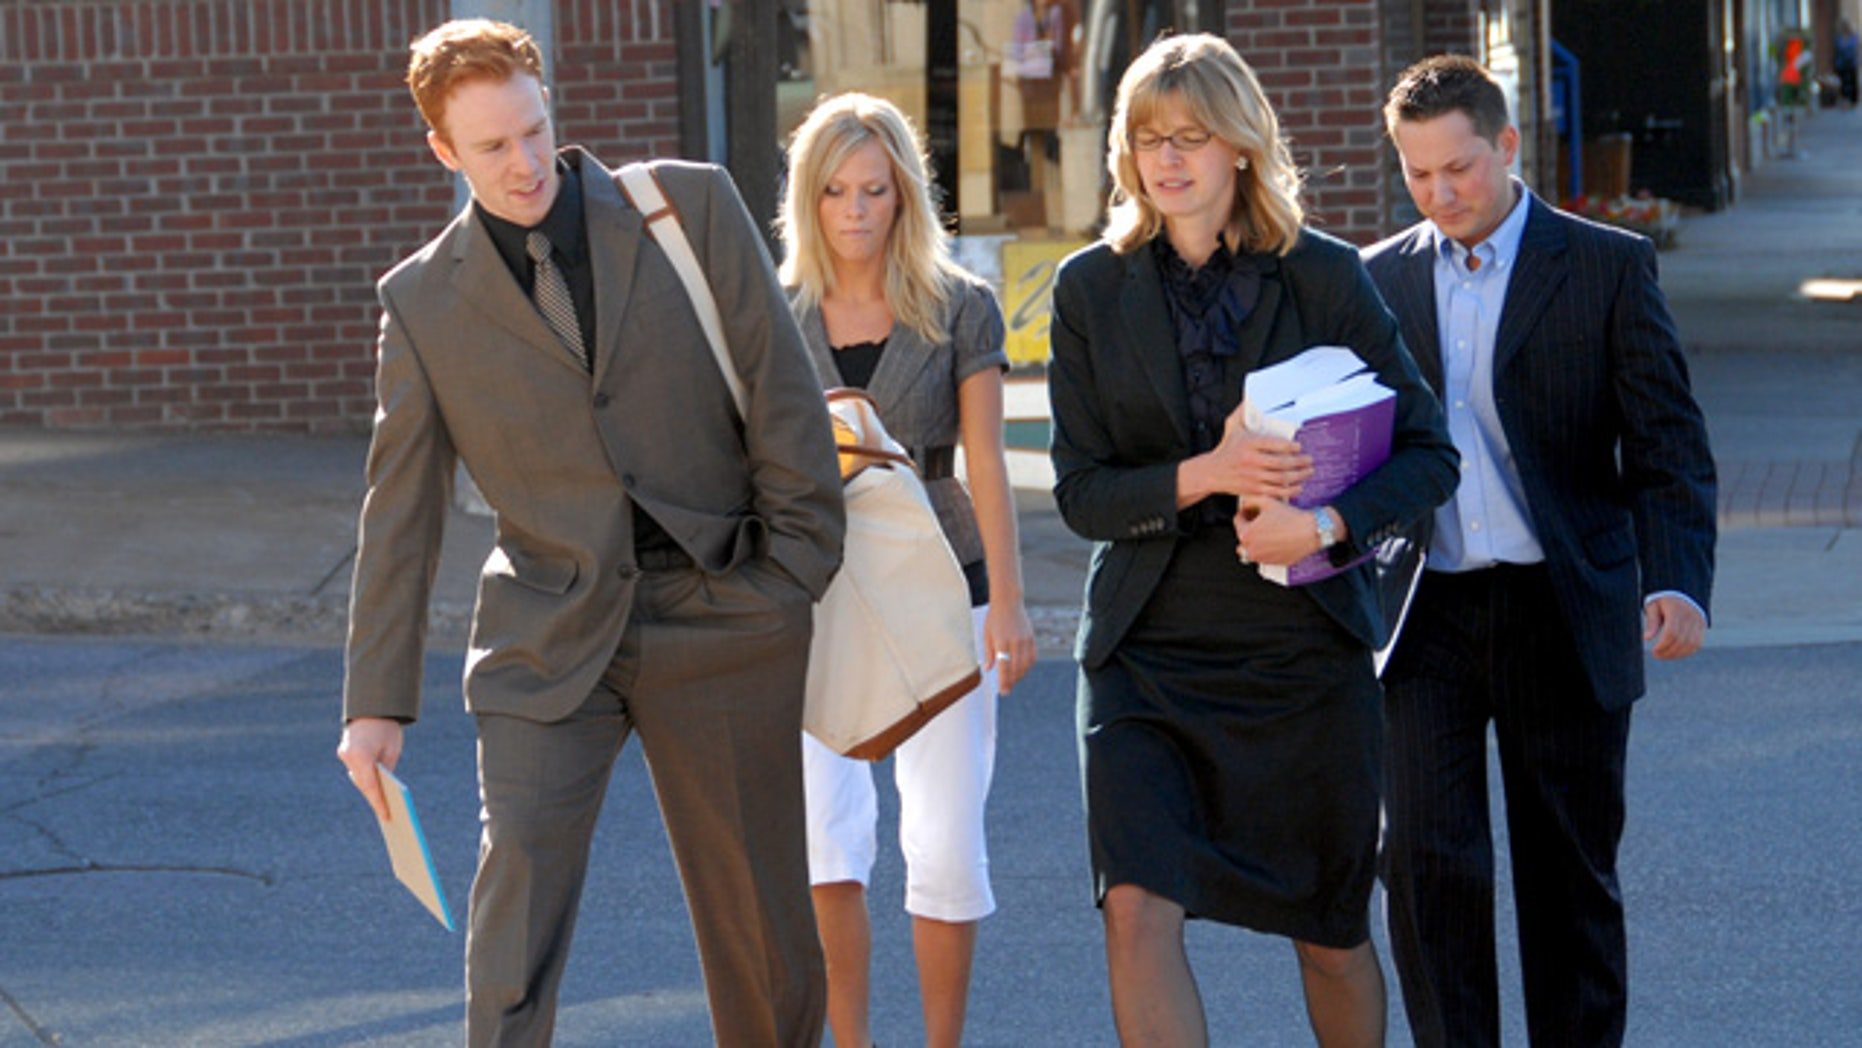 July 13: Defense attorney intern Ted Greeley, left, and lead attorney Sarah Henderson, second from right, walk with clients Allison Coss and Scott Sippola to the federal courthouse for the second day of a trial in U.S. District Court in Marquette, Mich.